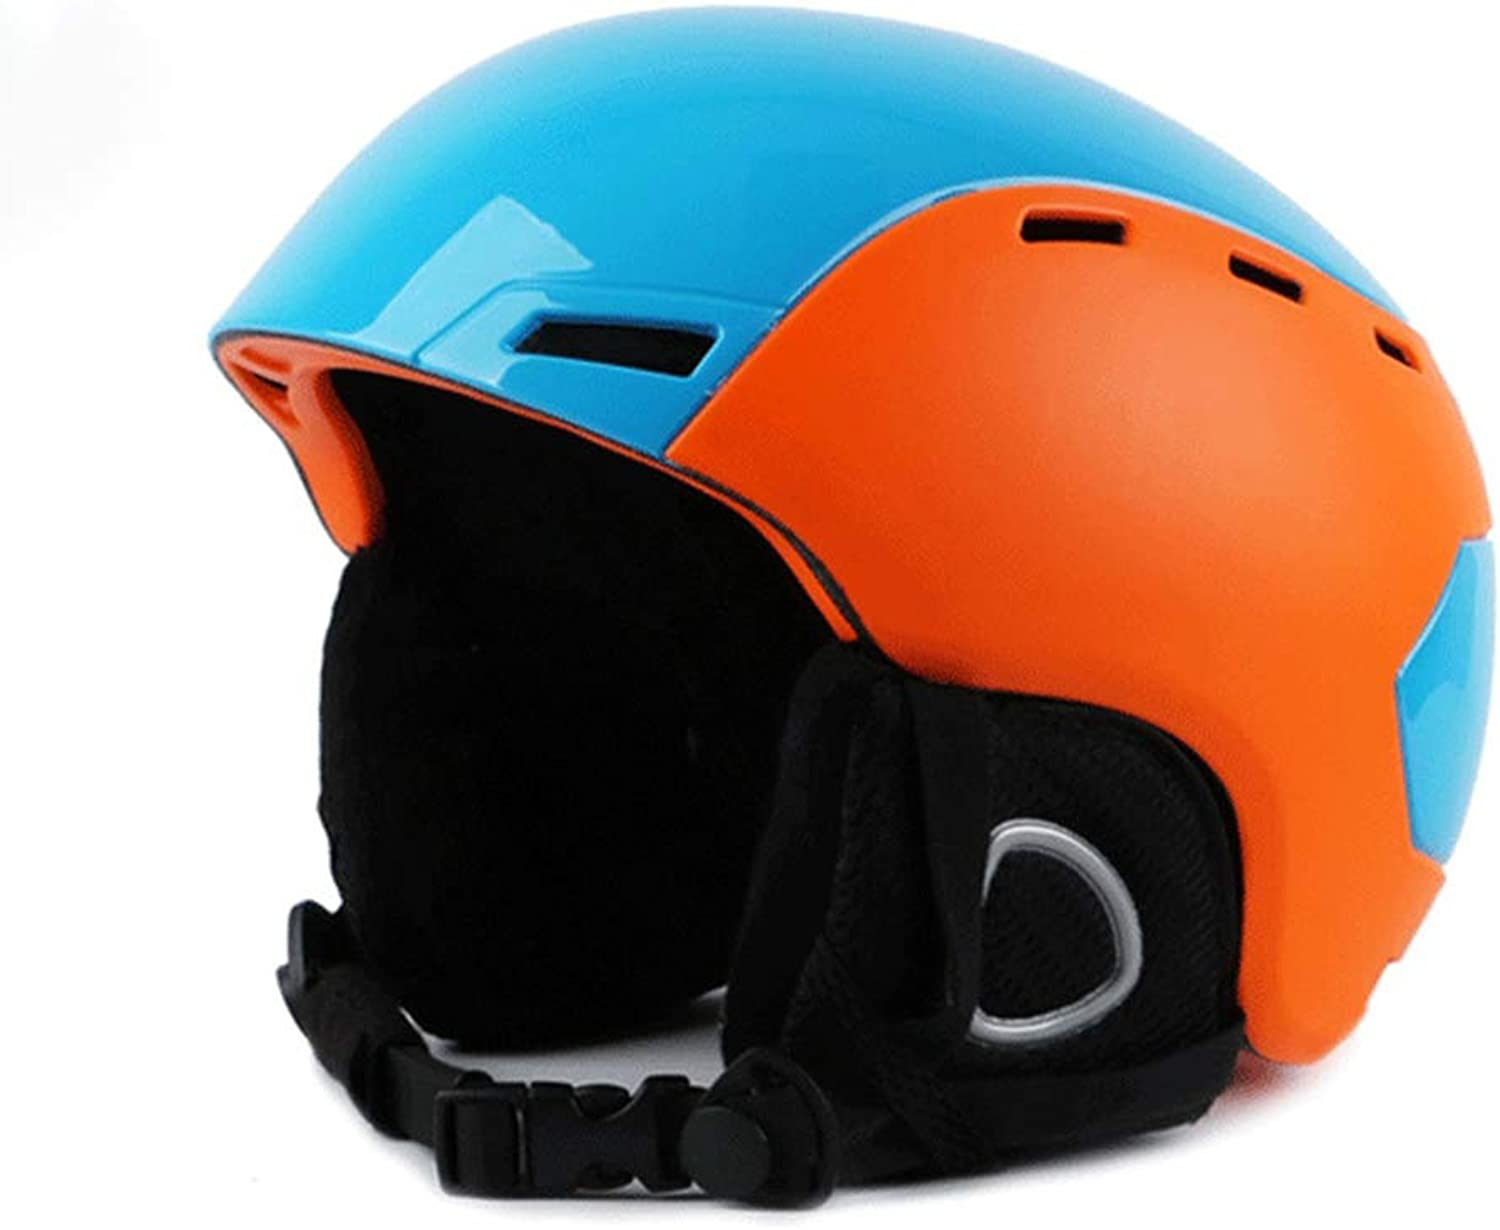 XBDOT Professional Snow Helmts Quality Certified 2-In-1 2-In-1 2-In-1 Cabrio Ski Skate Bike Adult Men damen Helm Skiing Helmet Ventilation Control and Comfortable Liner Blau & Orange (M, L),M B07L2STKPB  Geeignet für Farbe b4aacb